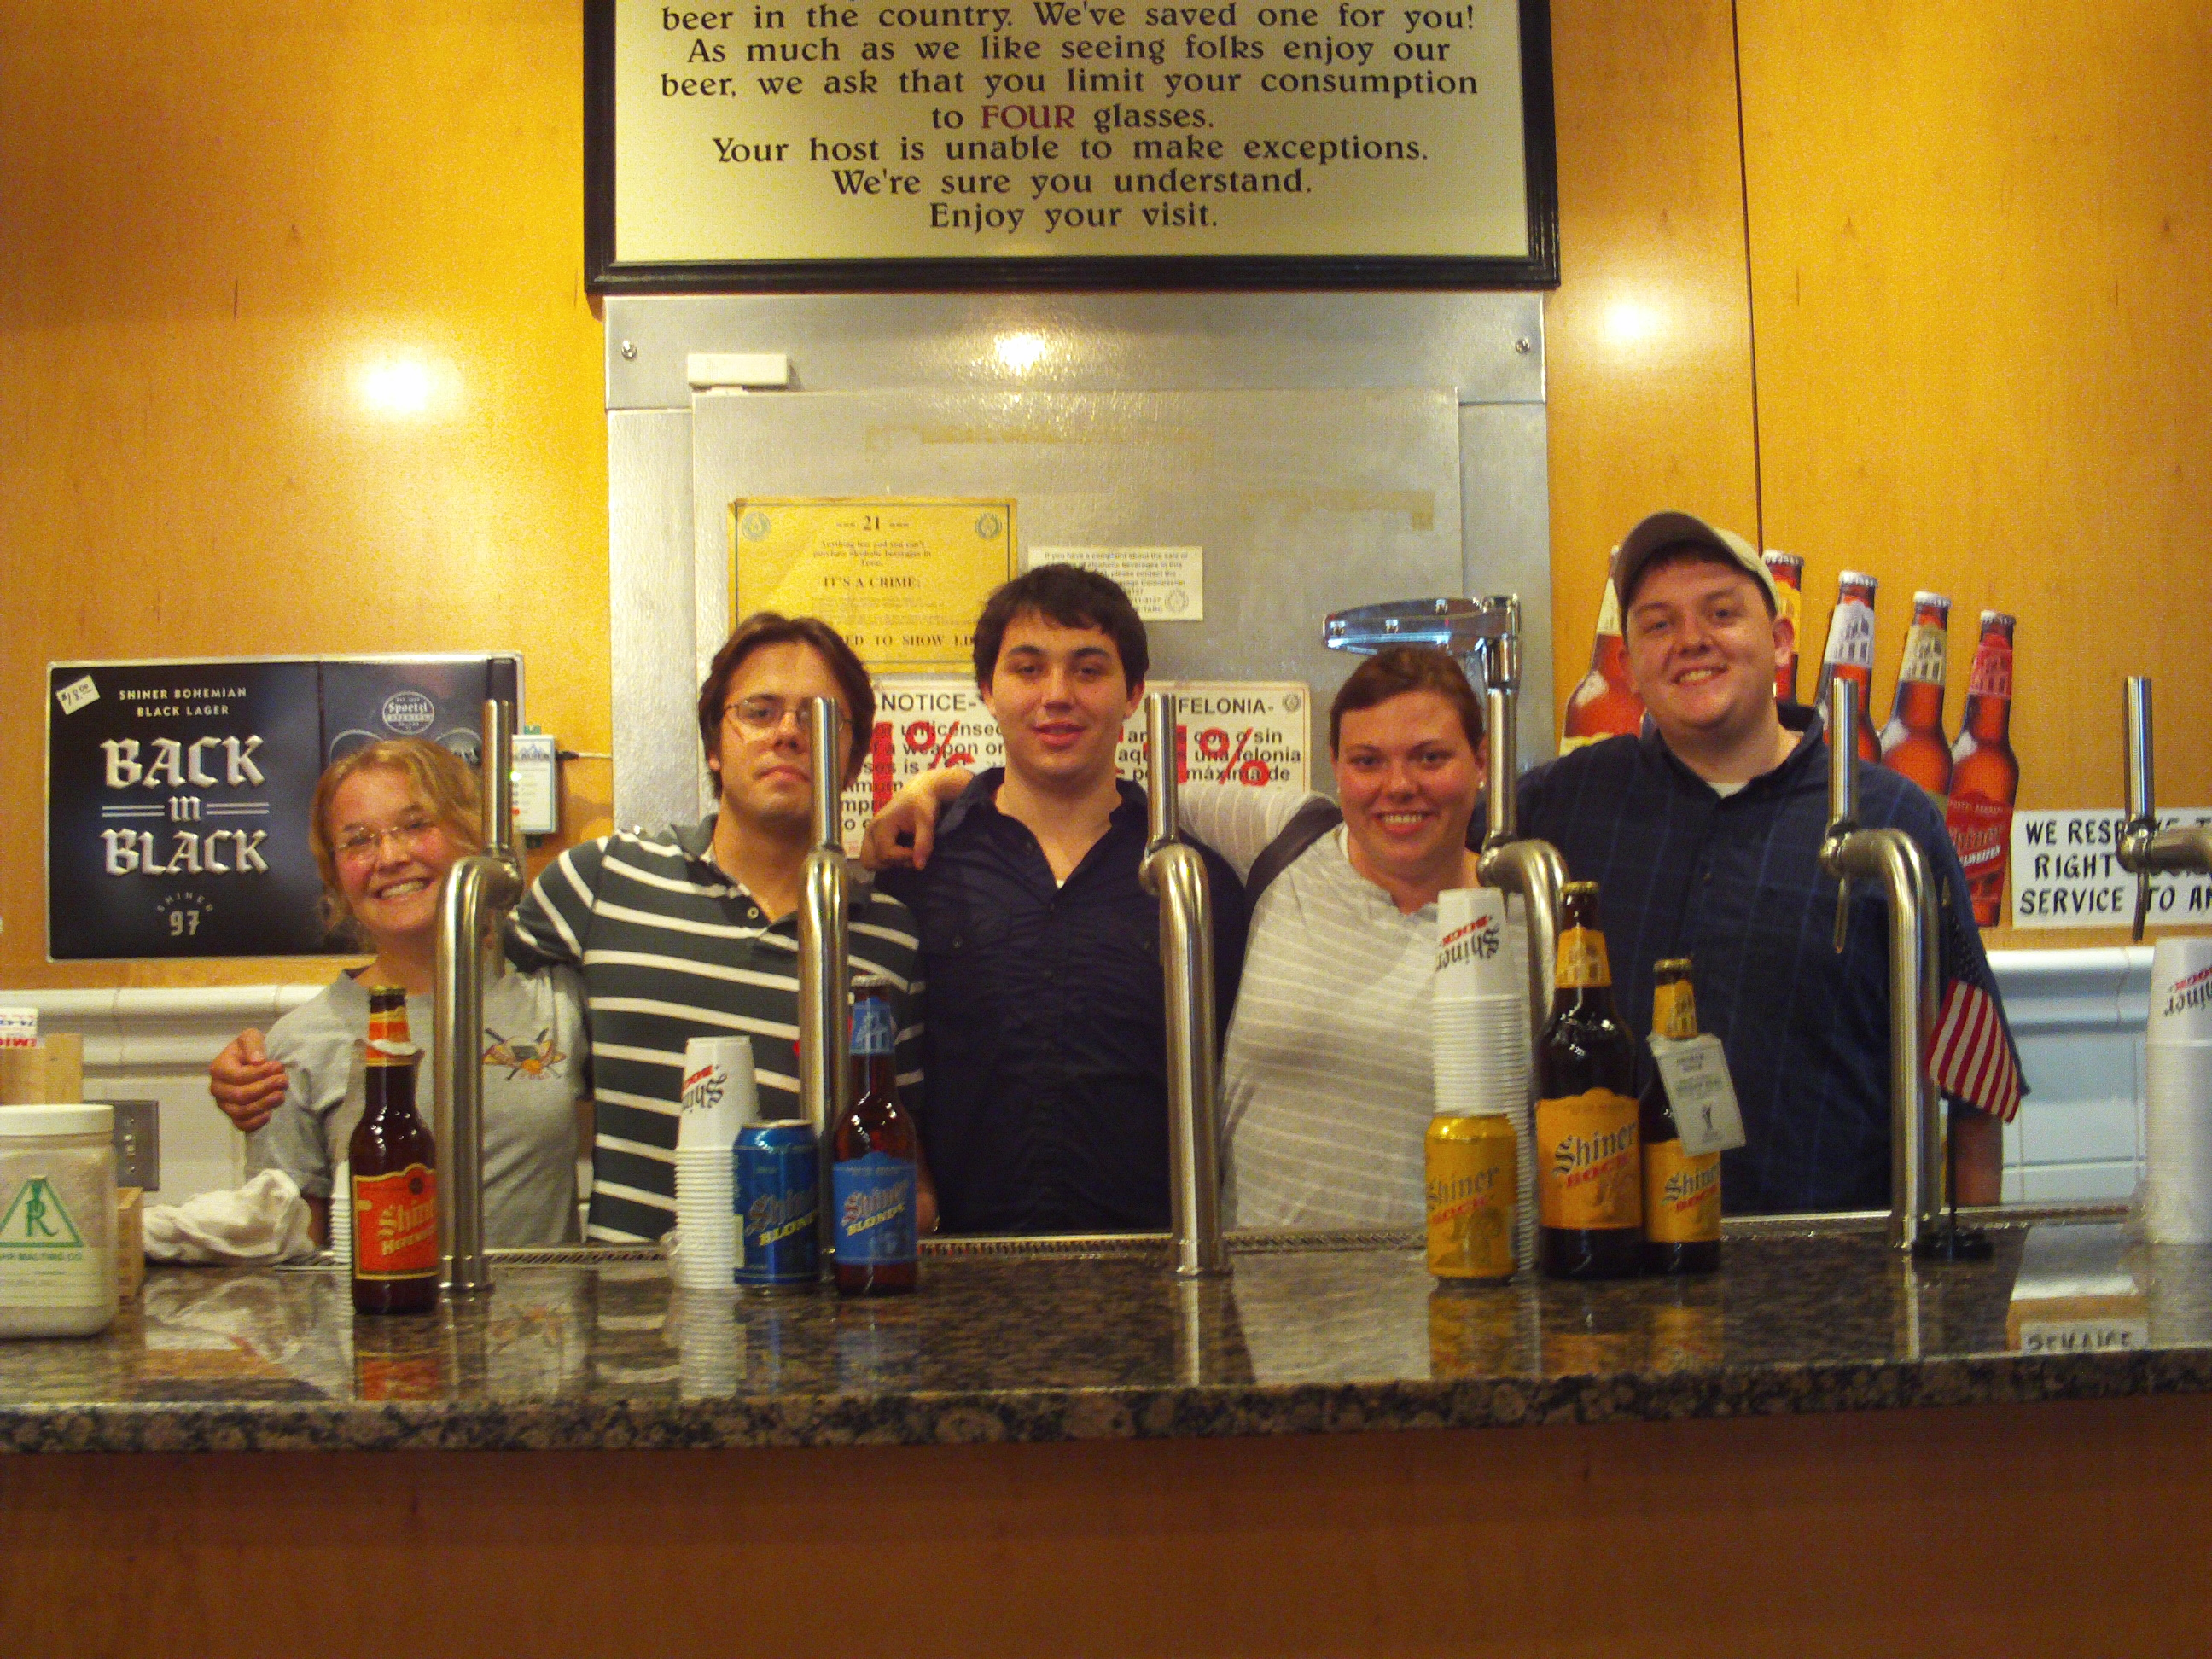 My friends and me behind the bar at Shiner Brewery